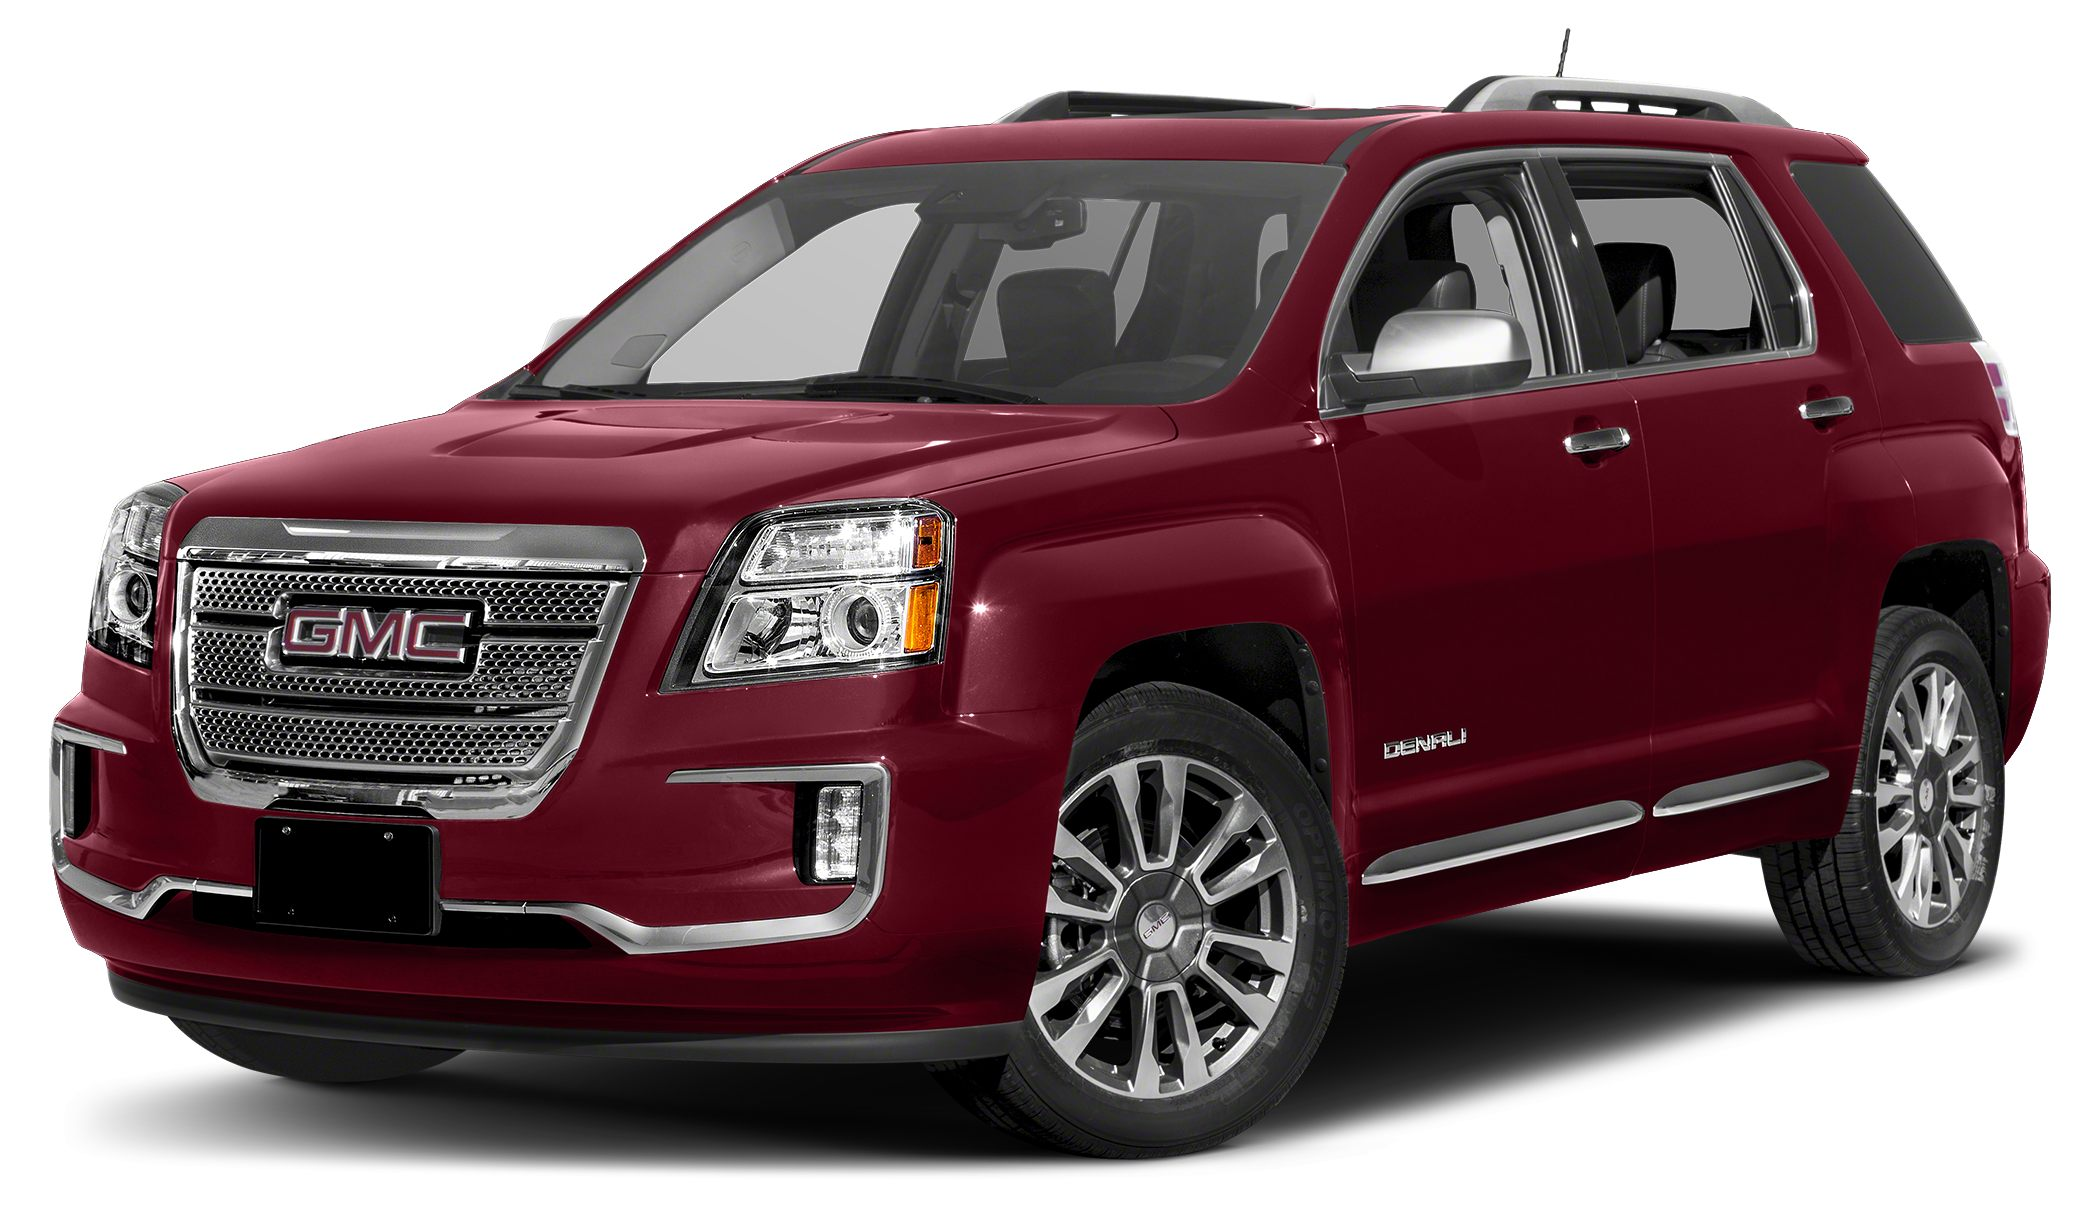 2016 GMC Terrain Denali Heated Leather Seats Nav System Back-Up Camera Premium Sound System Re